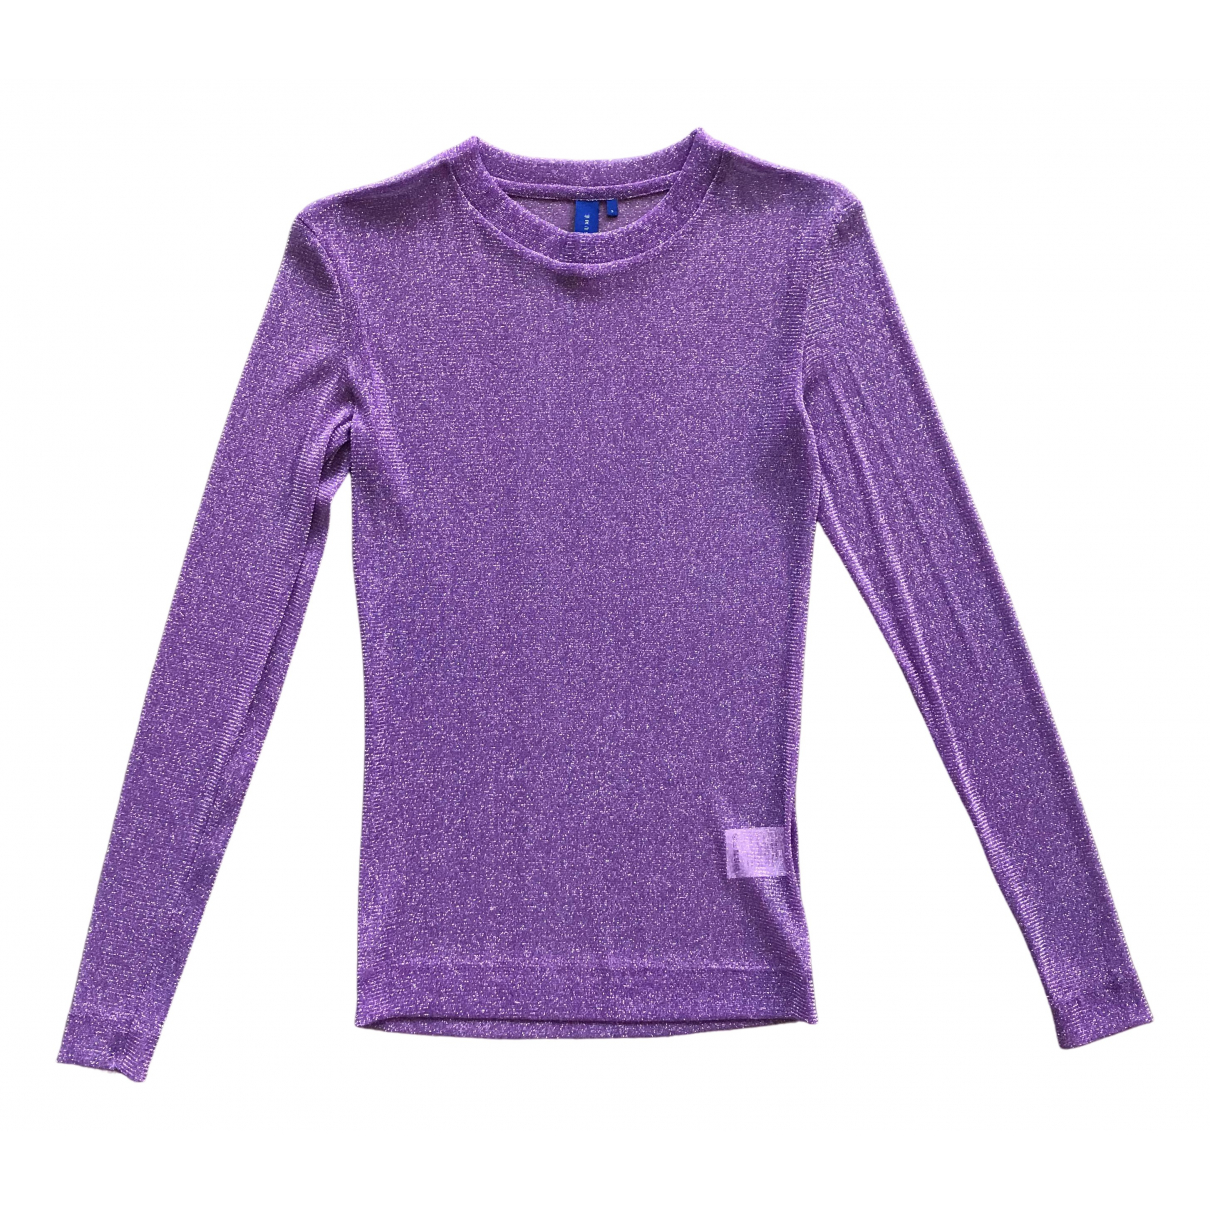 Resume \N Top in  Lila Polyester